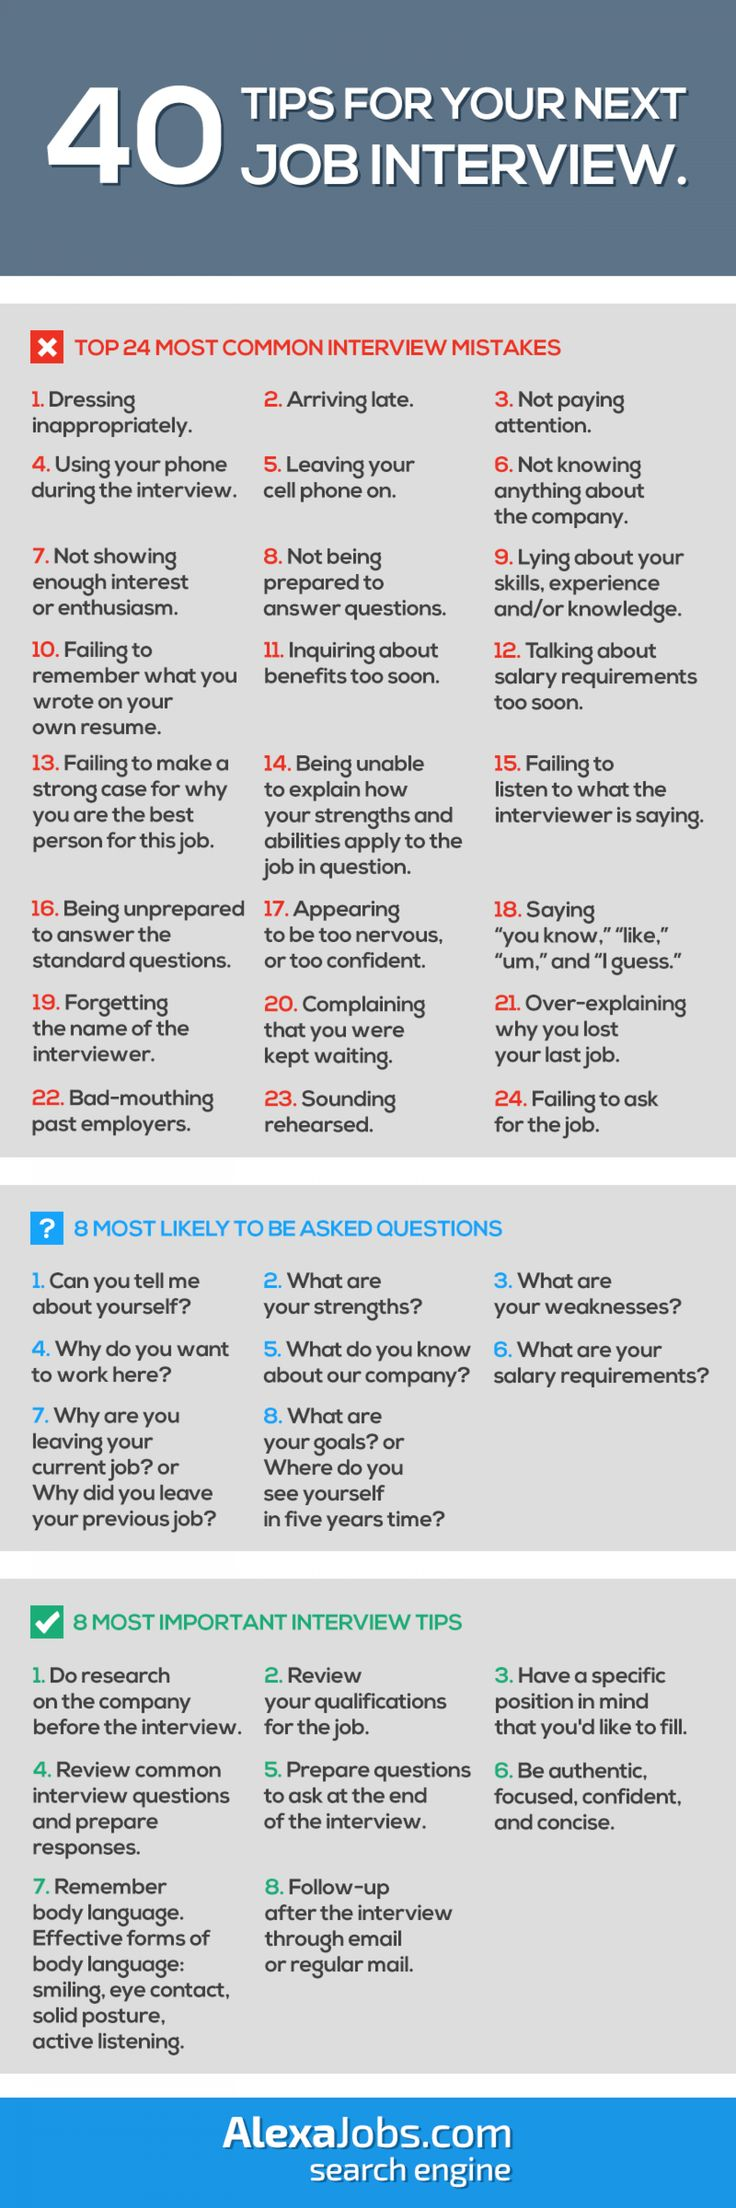 Best 25+ Interview Questions Ideas On Pinterest | Job Interview Questions,  Job Interview Tips And Accounting Interview Questions  Resume Questions